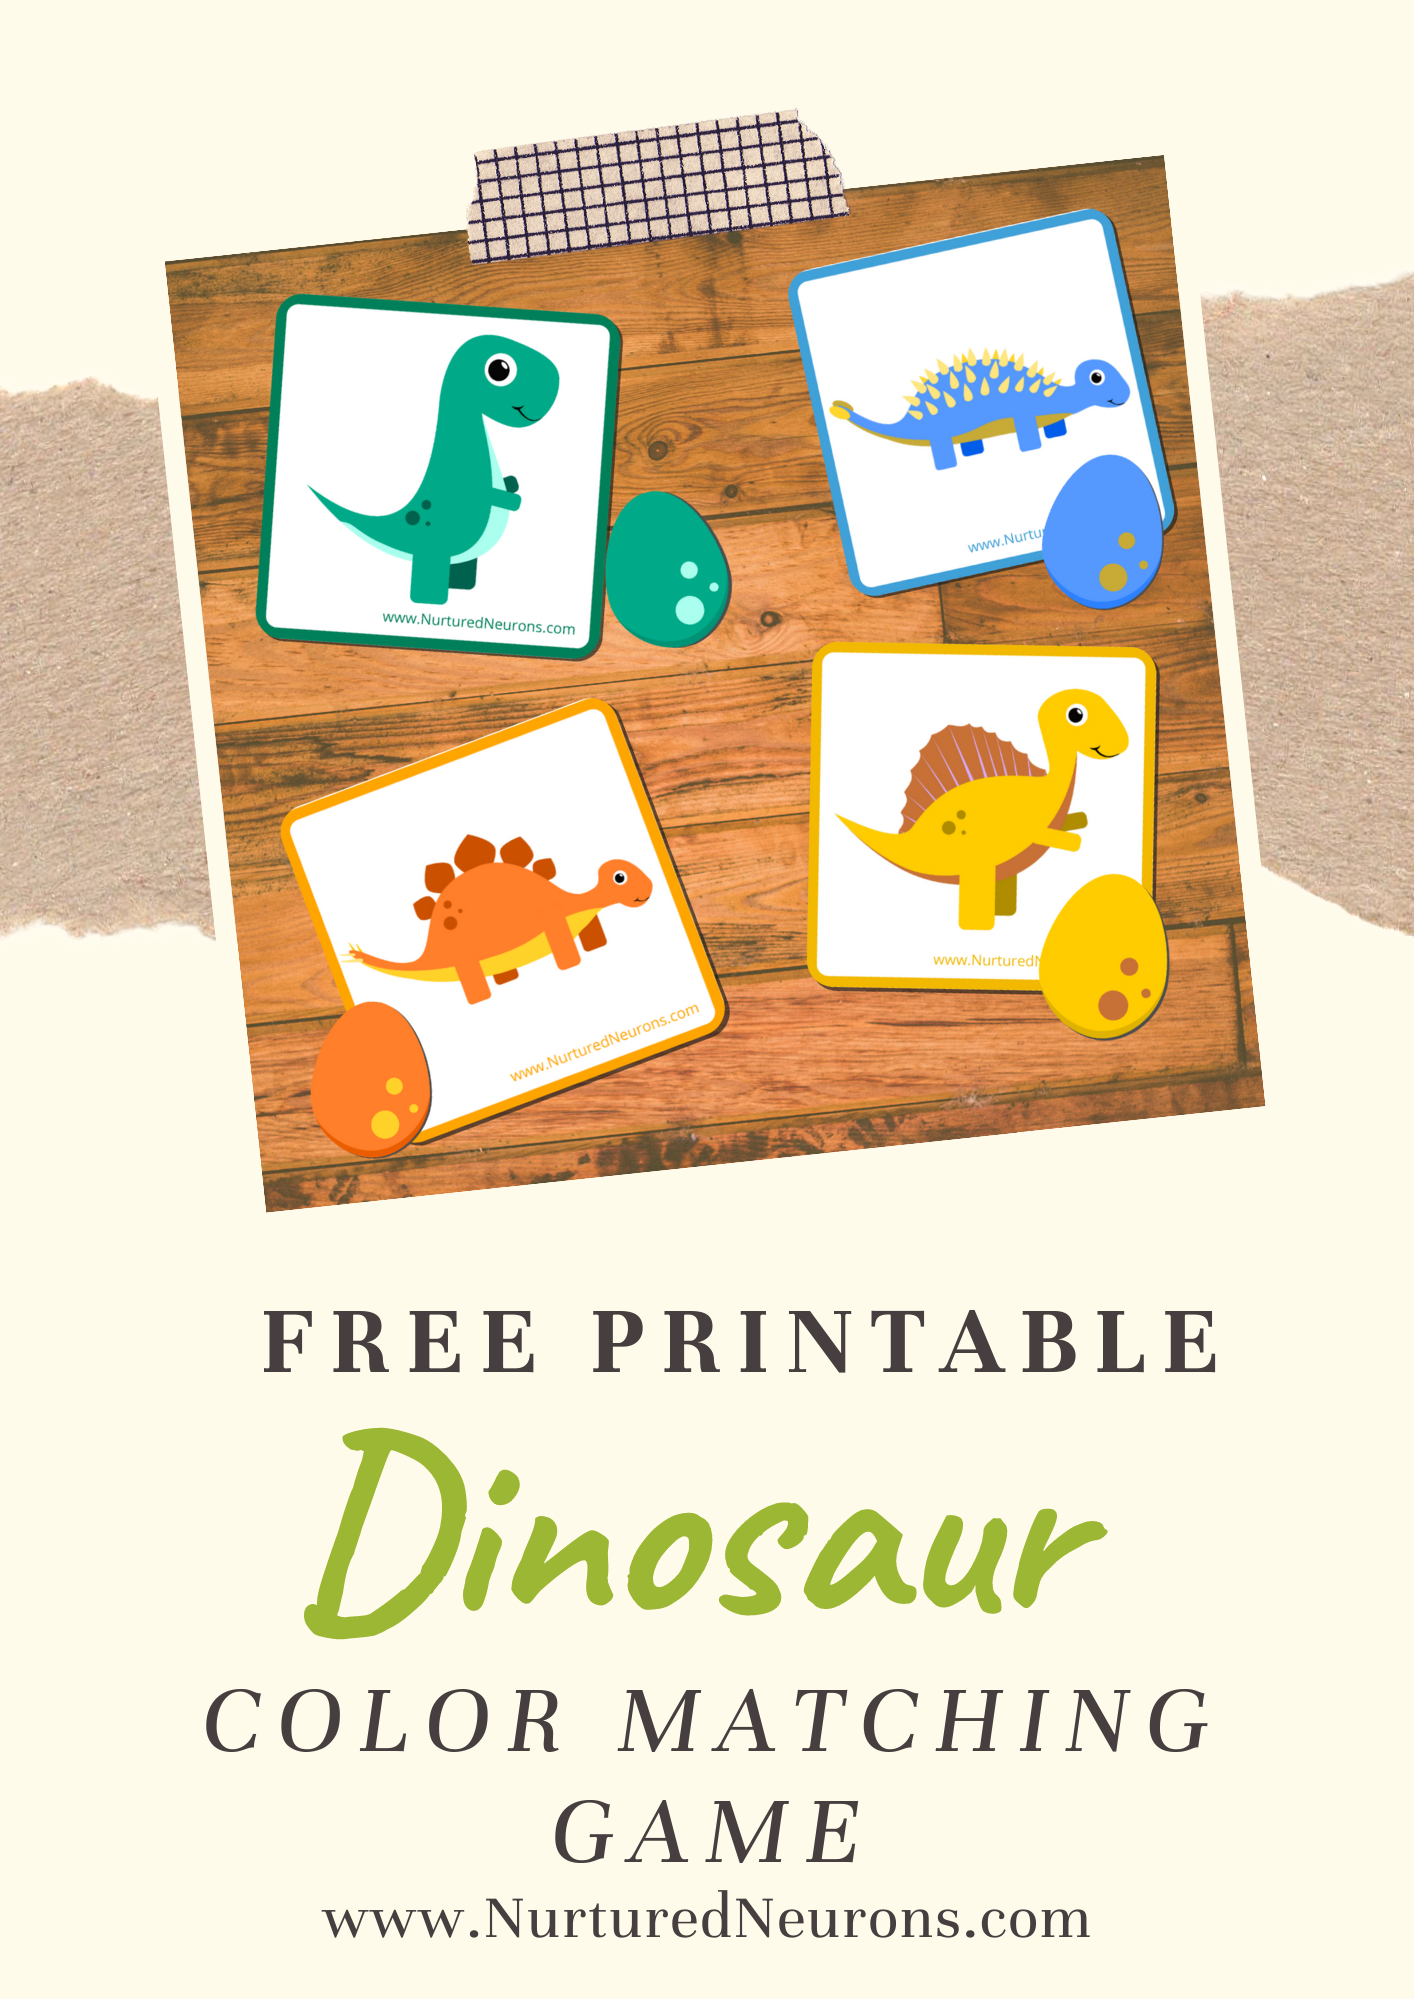 Cute Dinosaur Color Matching Game Free Printable